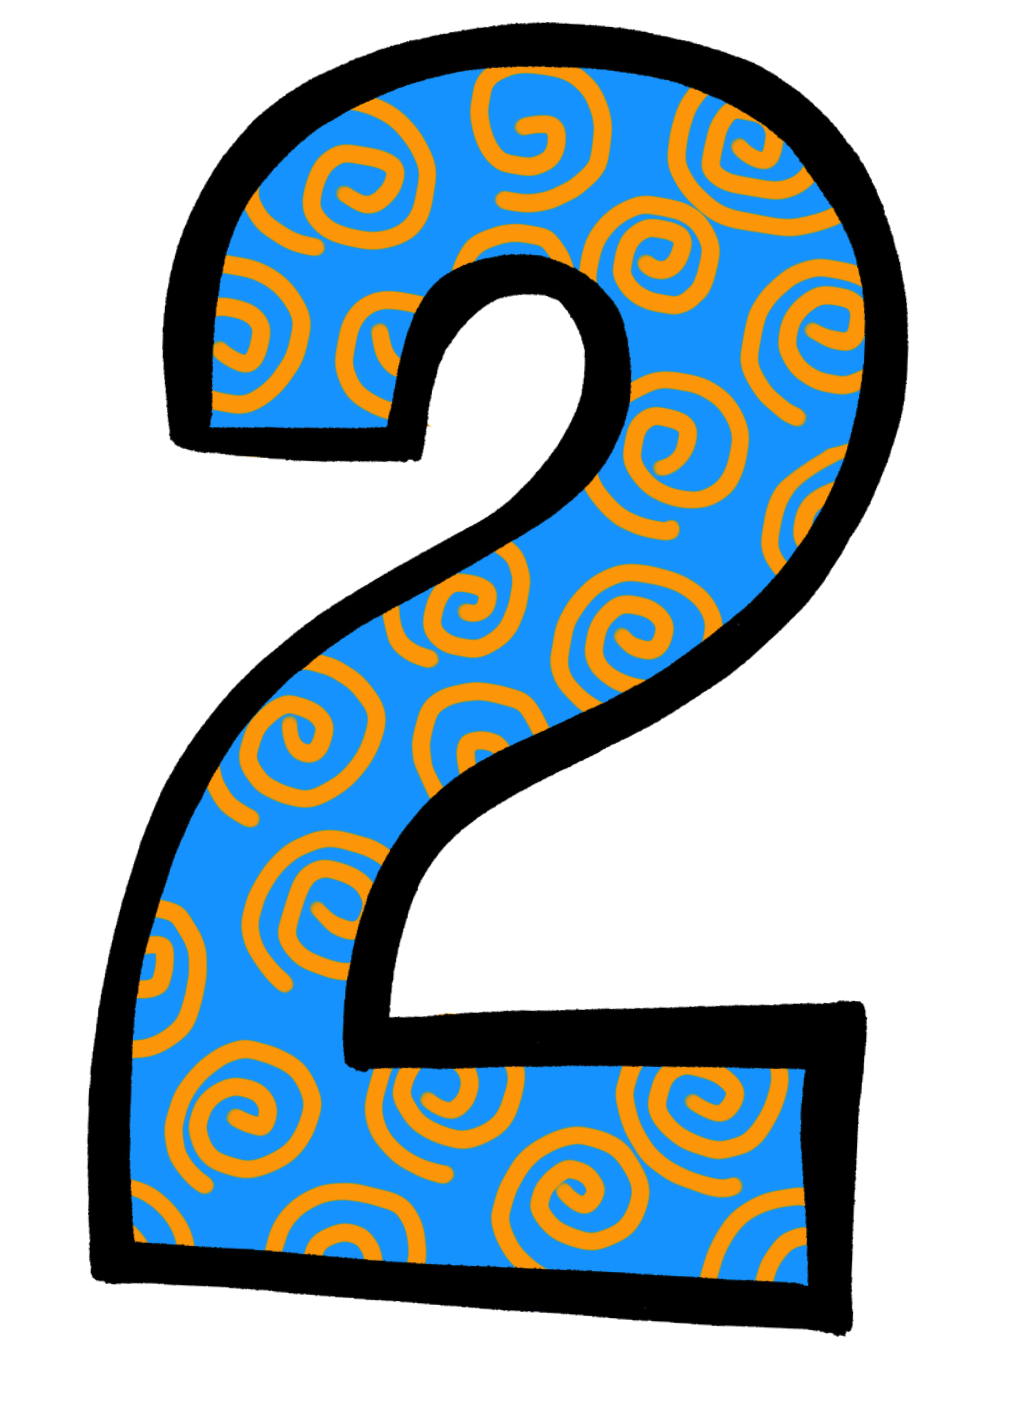 Number collection images. Clipart panda two